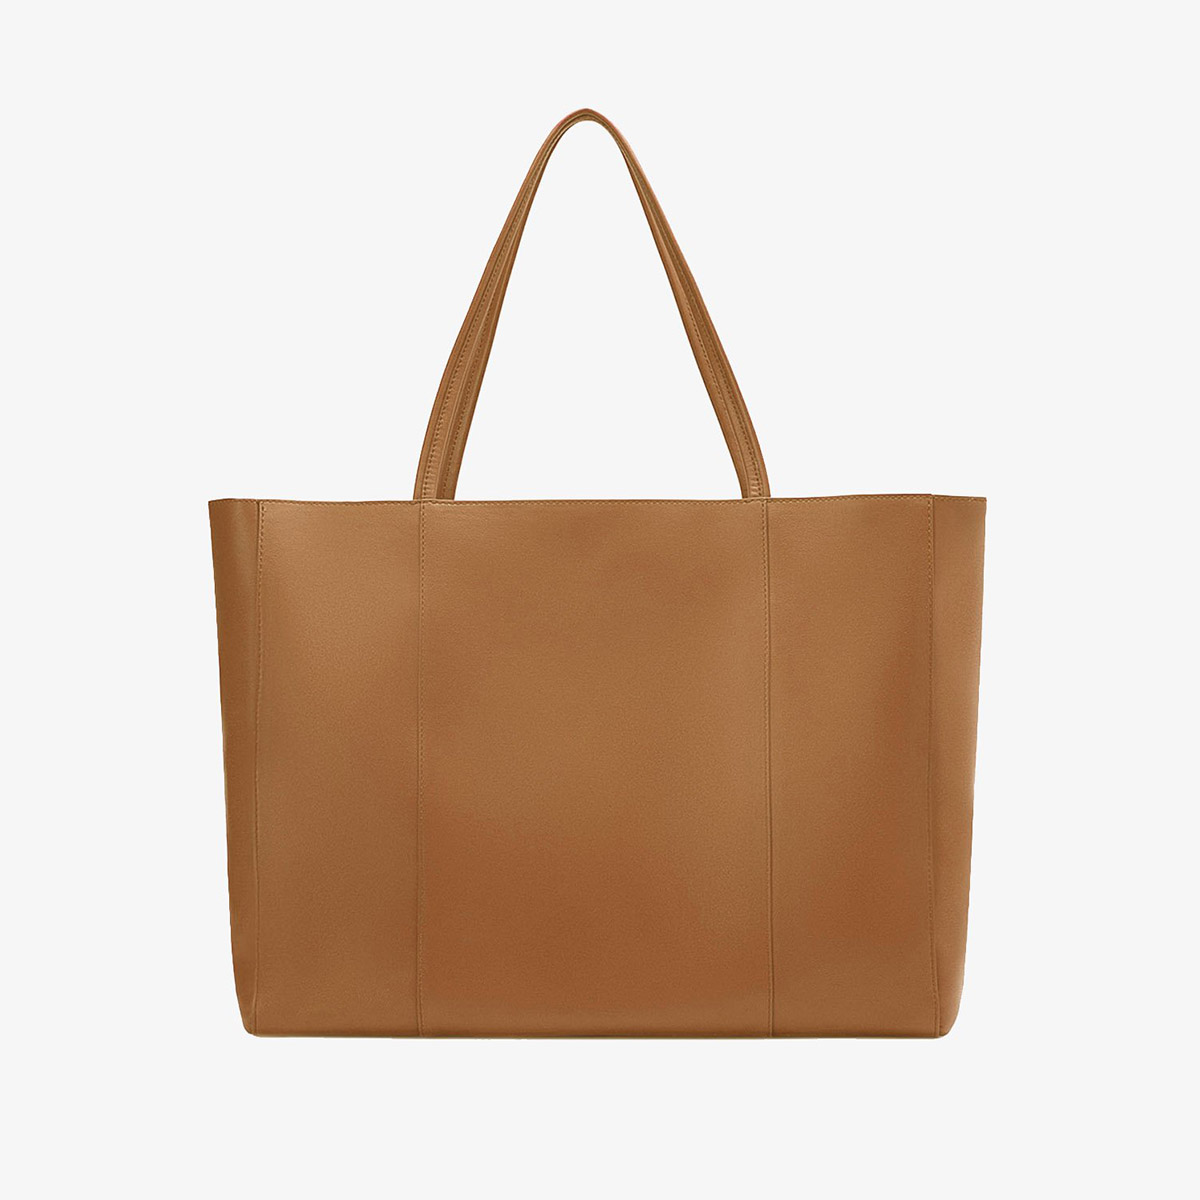 italic-affordable-luxury-leather-bags